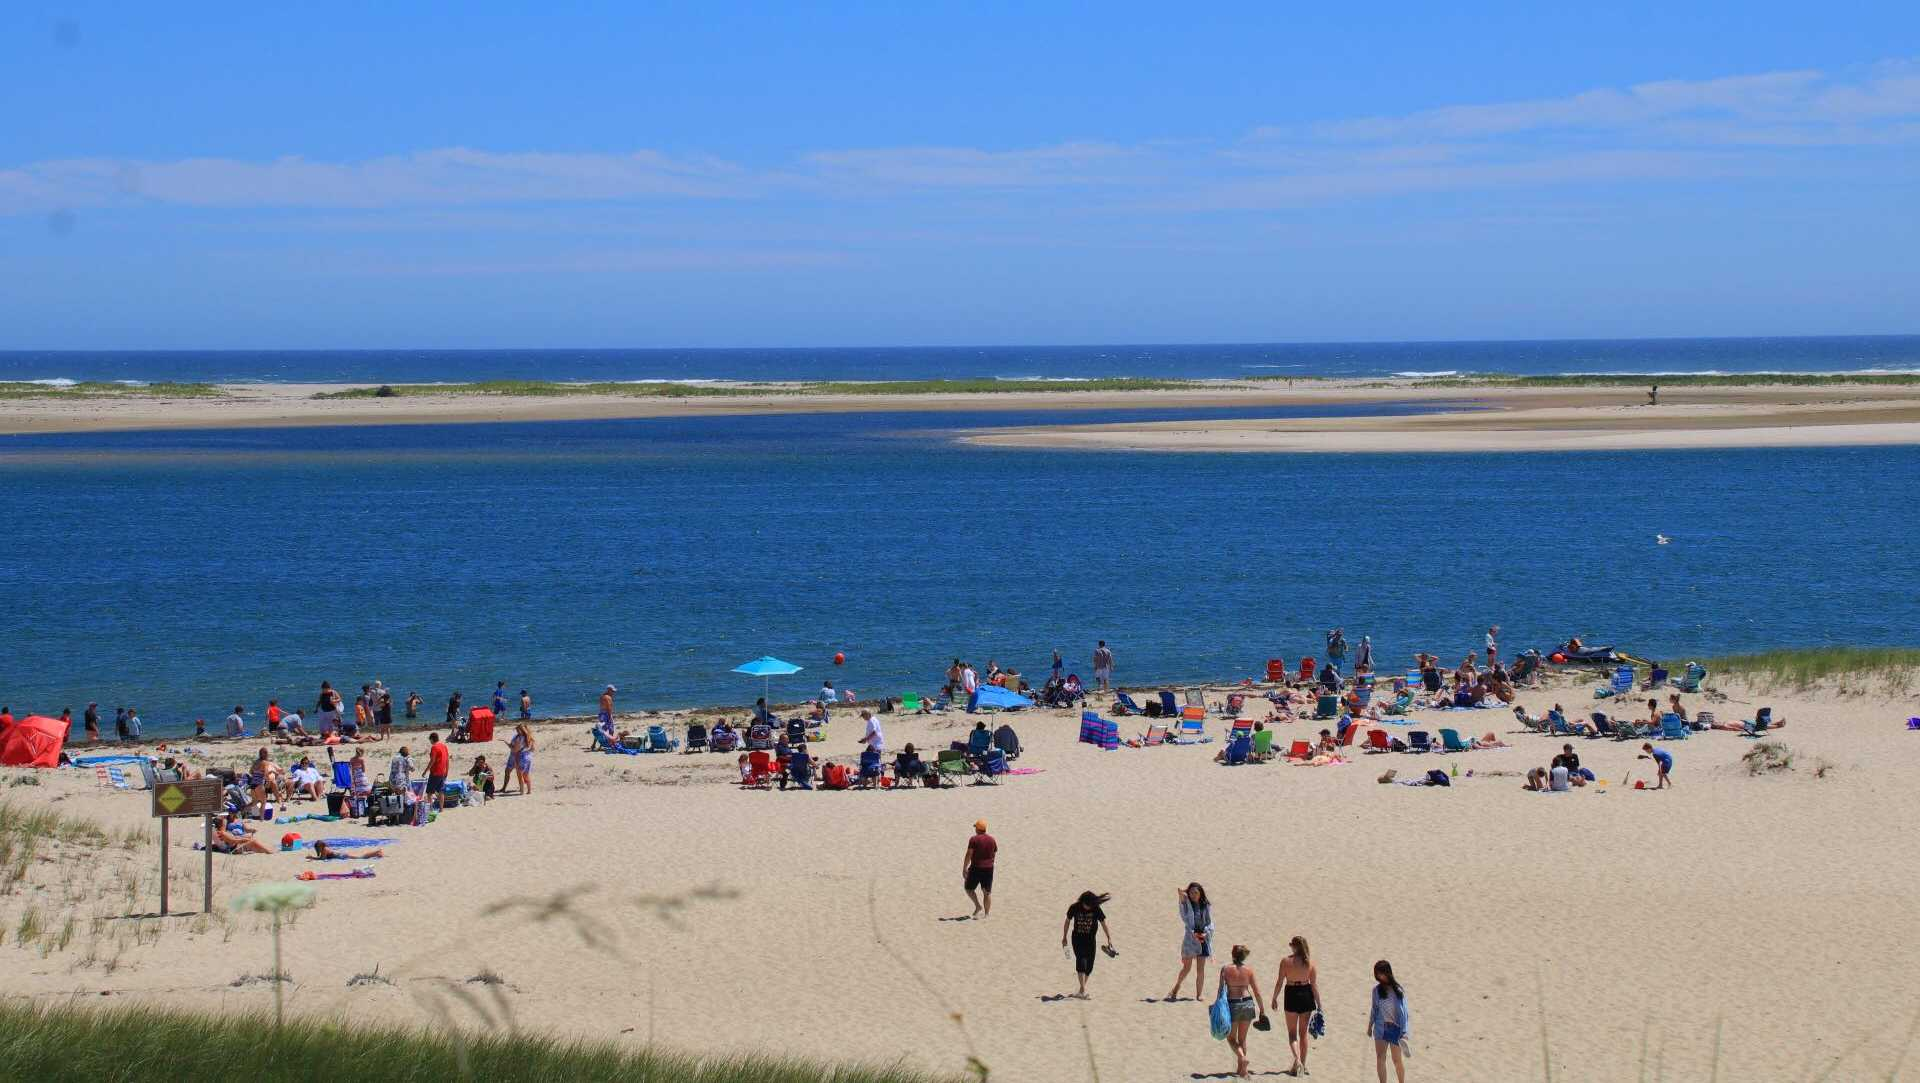 In this file image, beachgoers enjoy a sunny afternoon at Lighthouse Beach in Chatham, Mass.